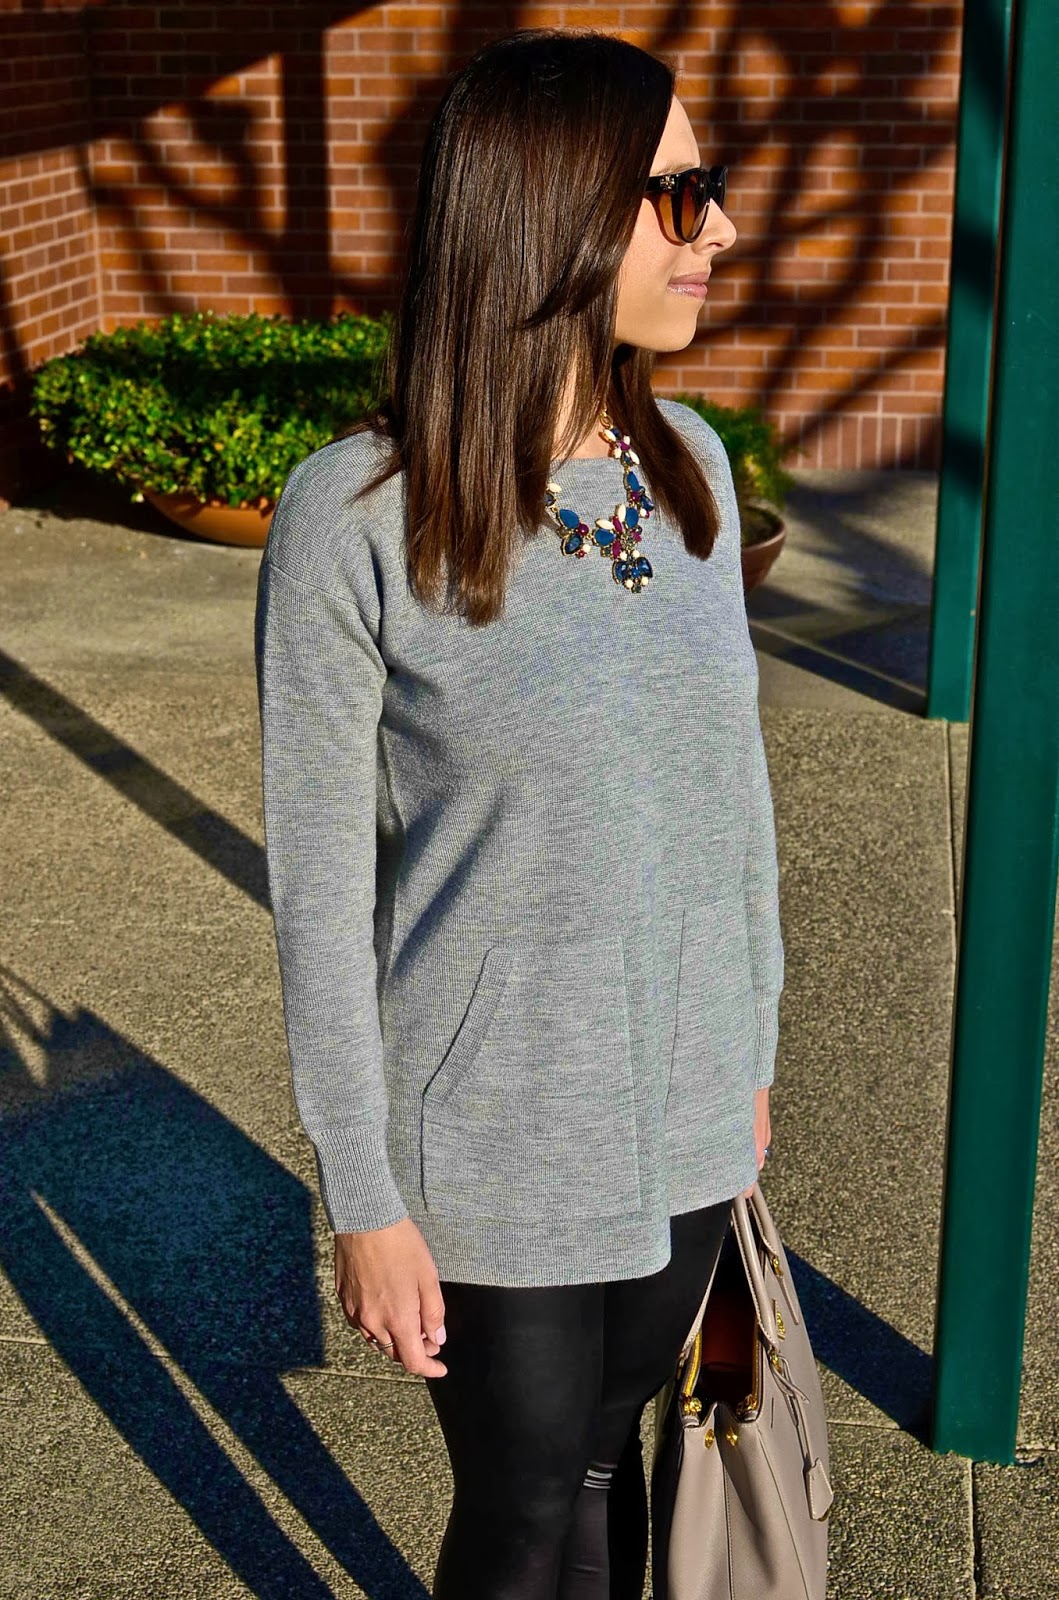 jcrew sweater and necklace